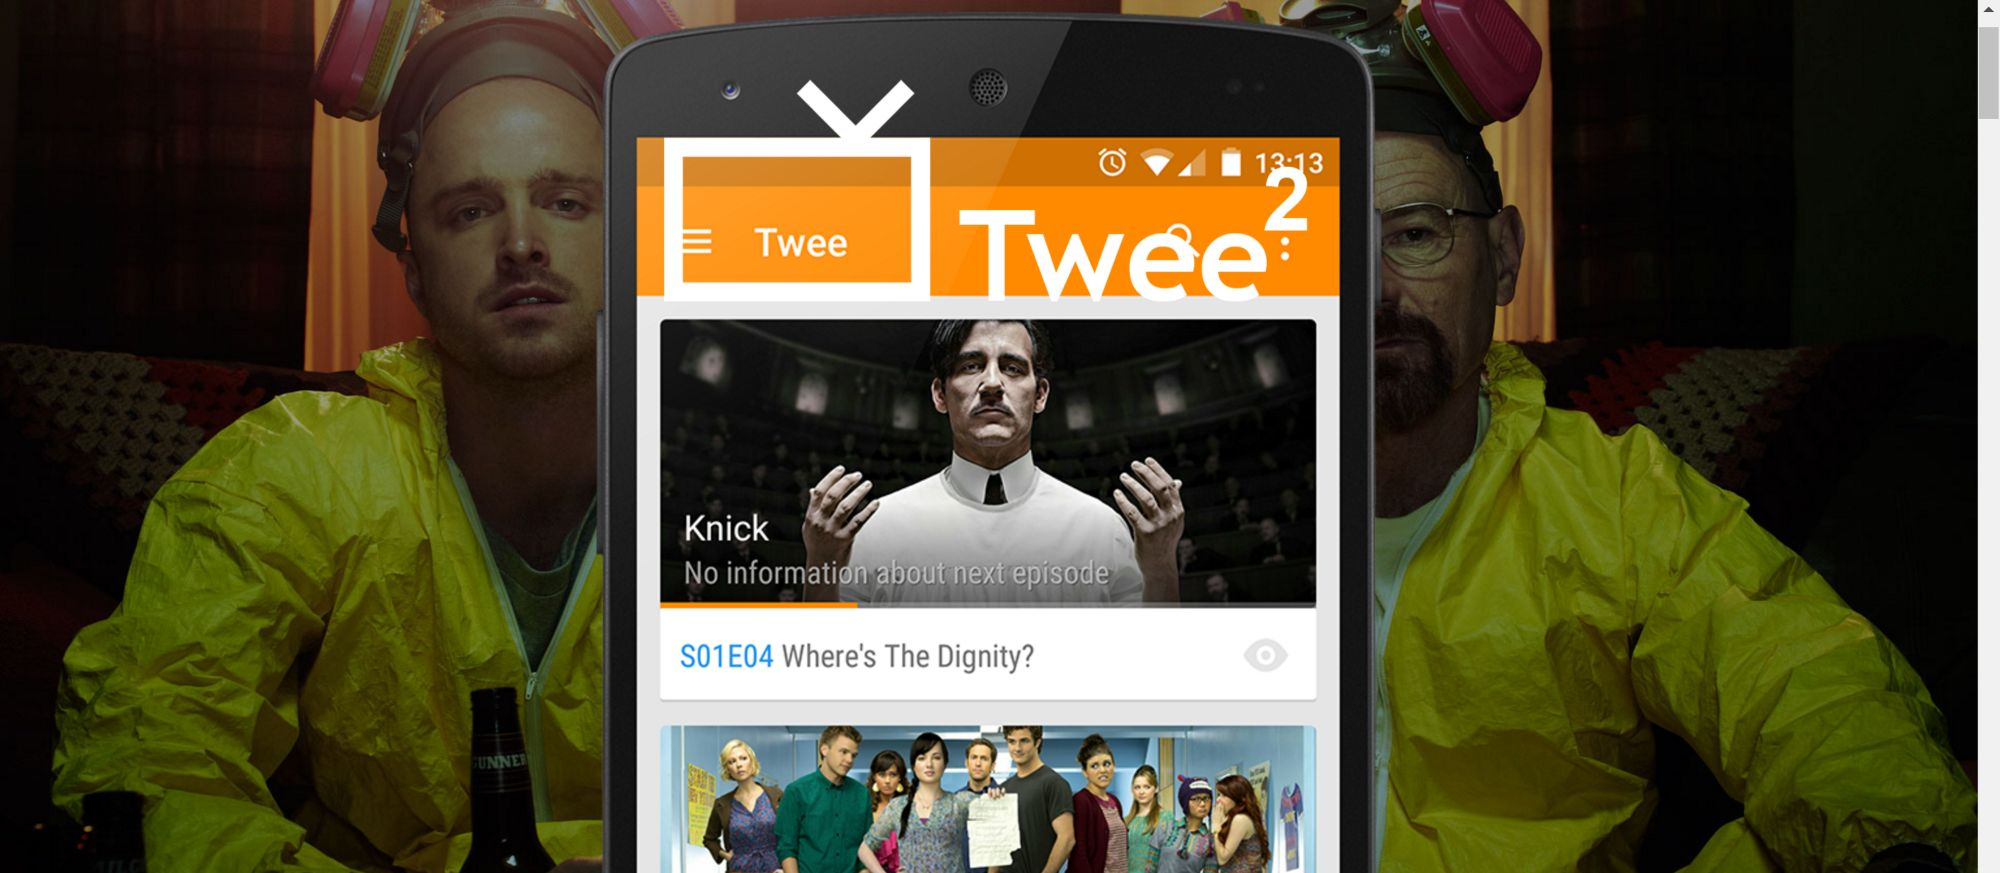 My New Favorite Android App to Track TV Shows